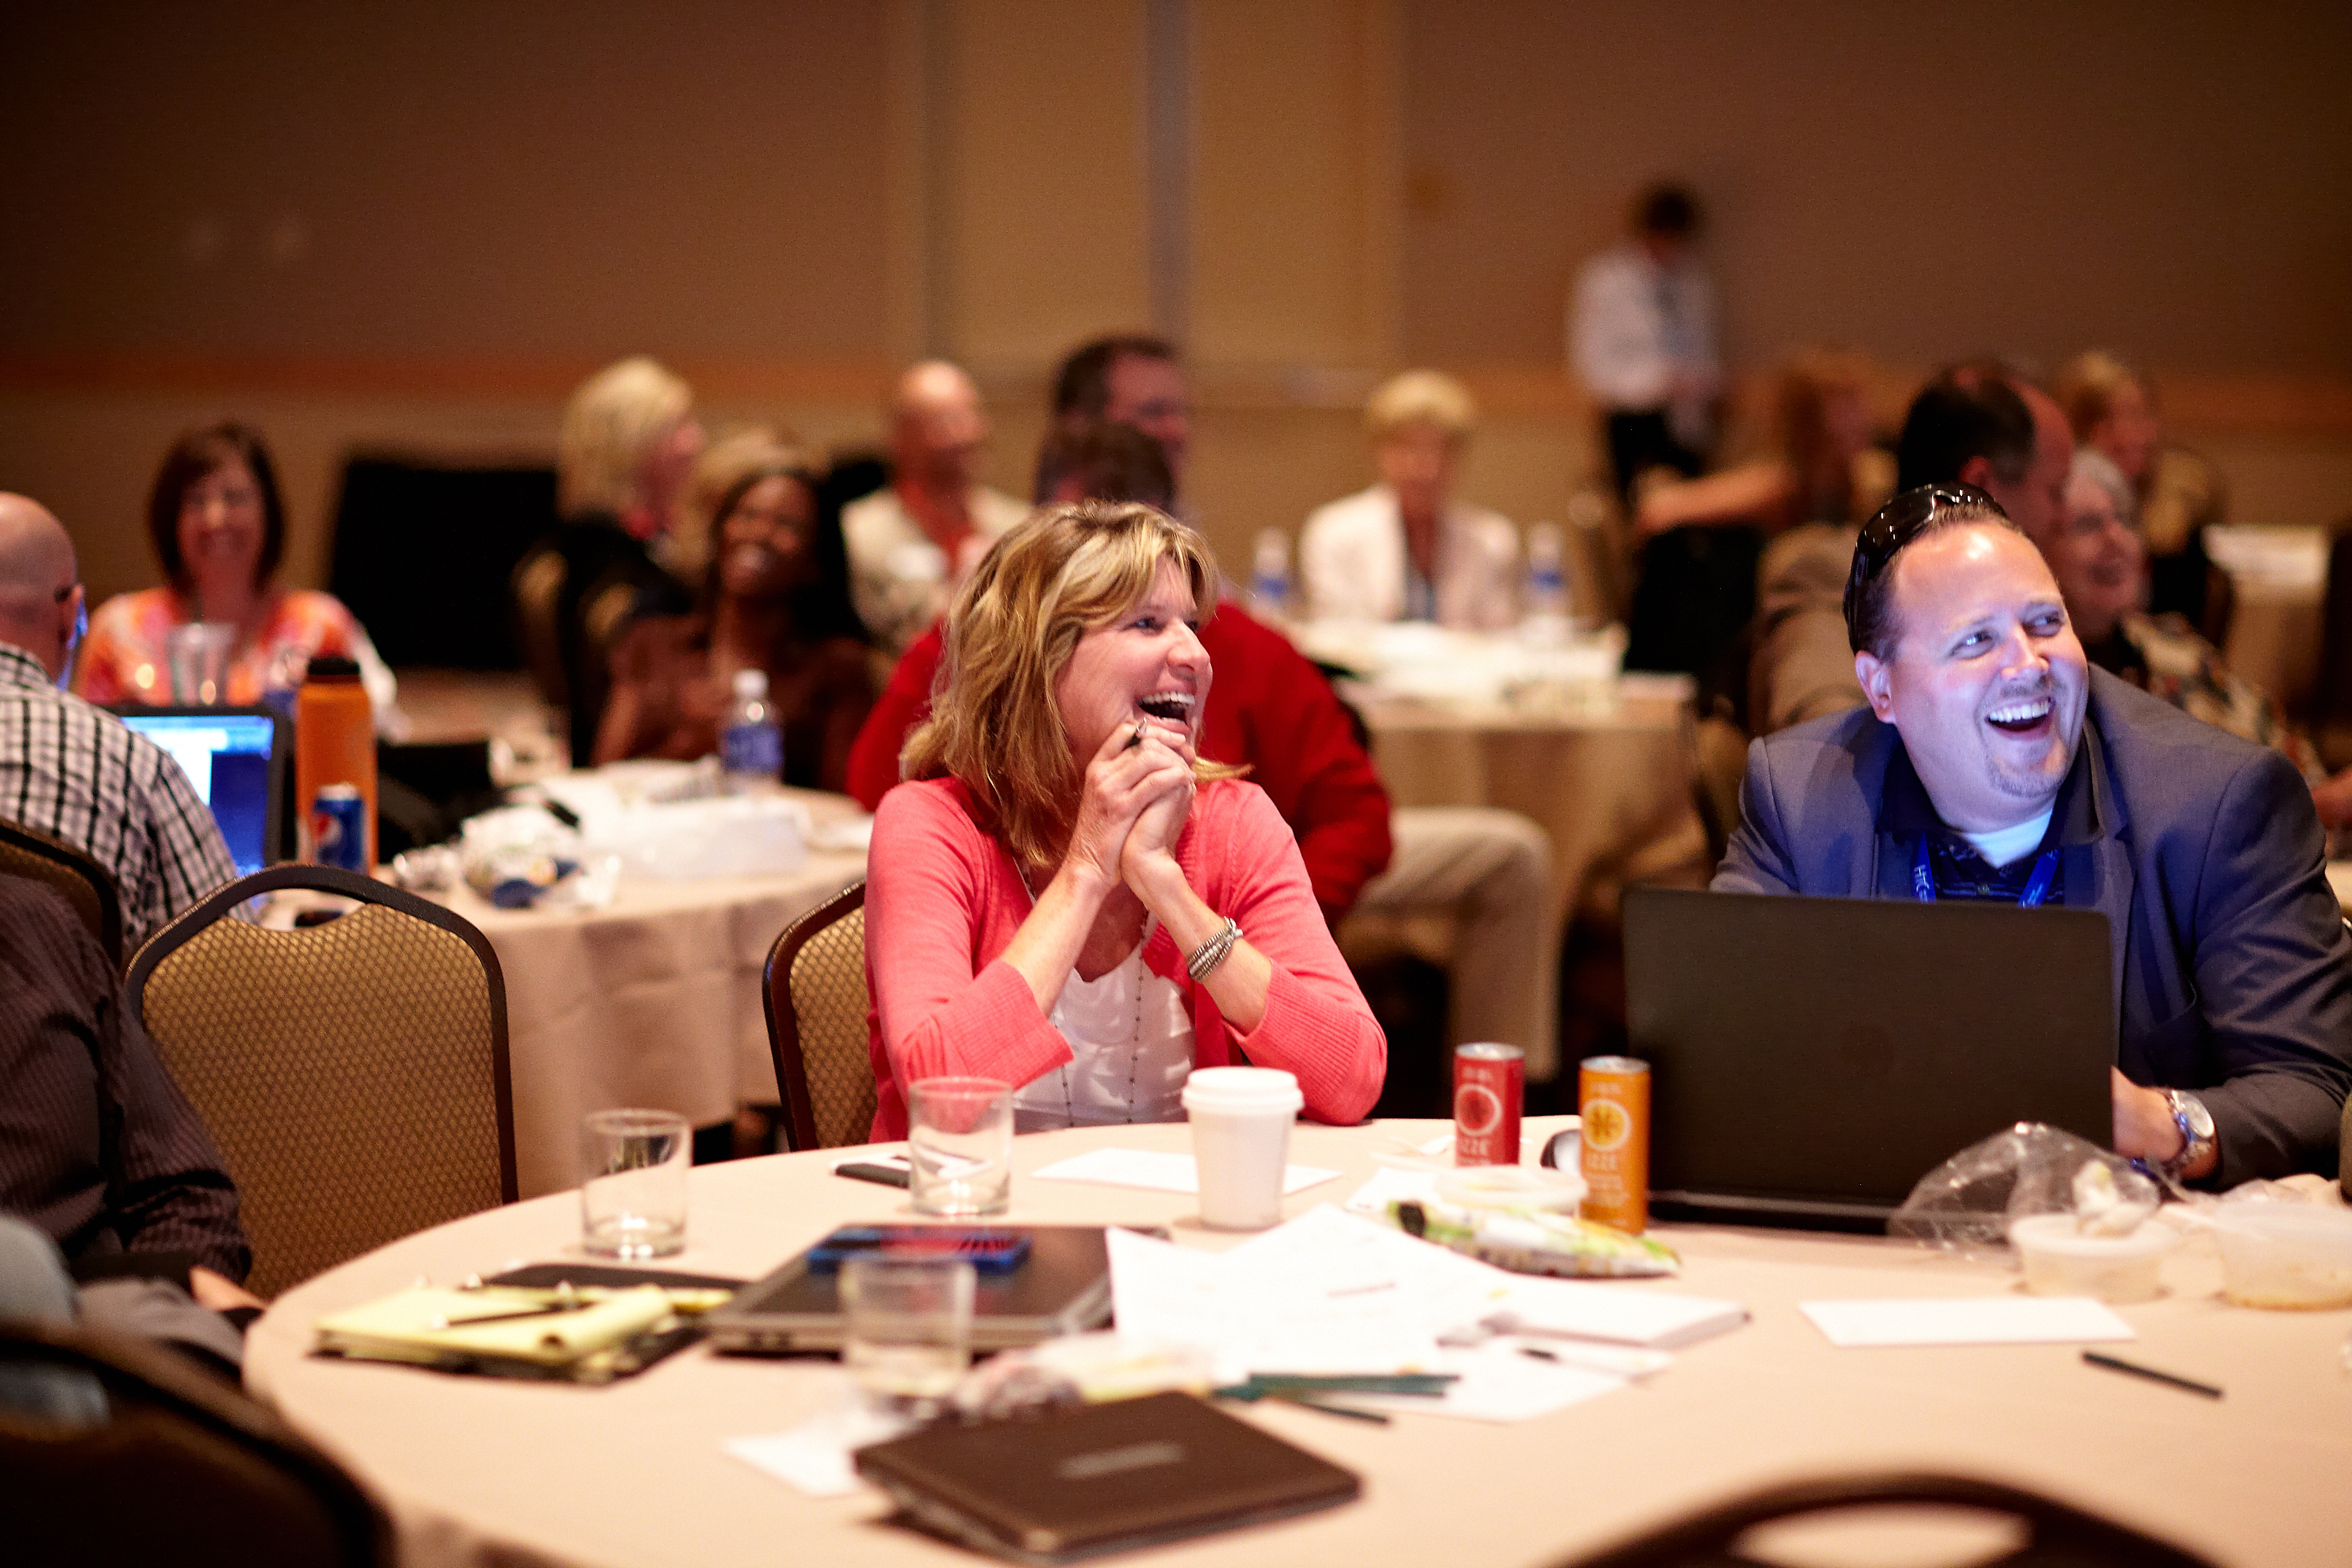 Image of two event attendees smiling during a Keynote speaker presentation